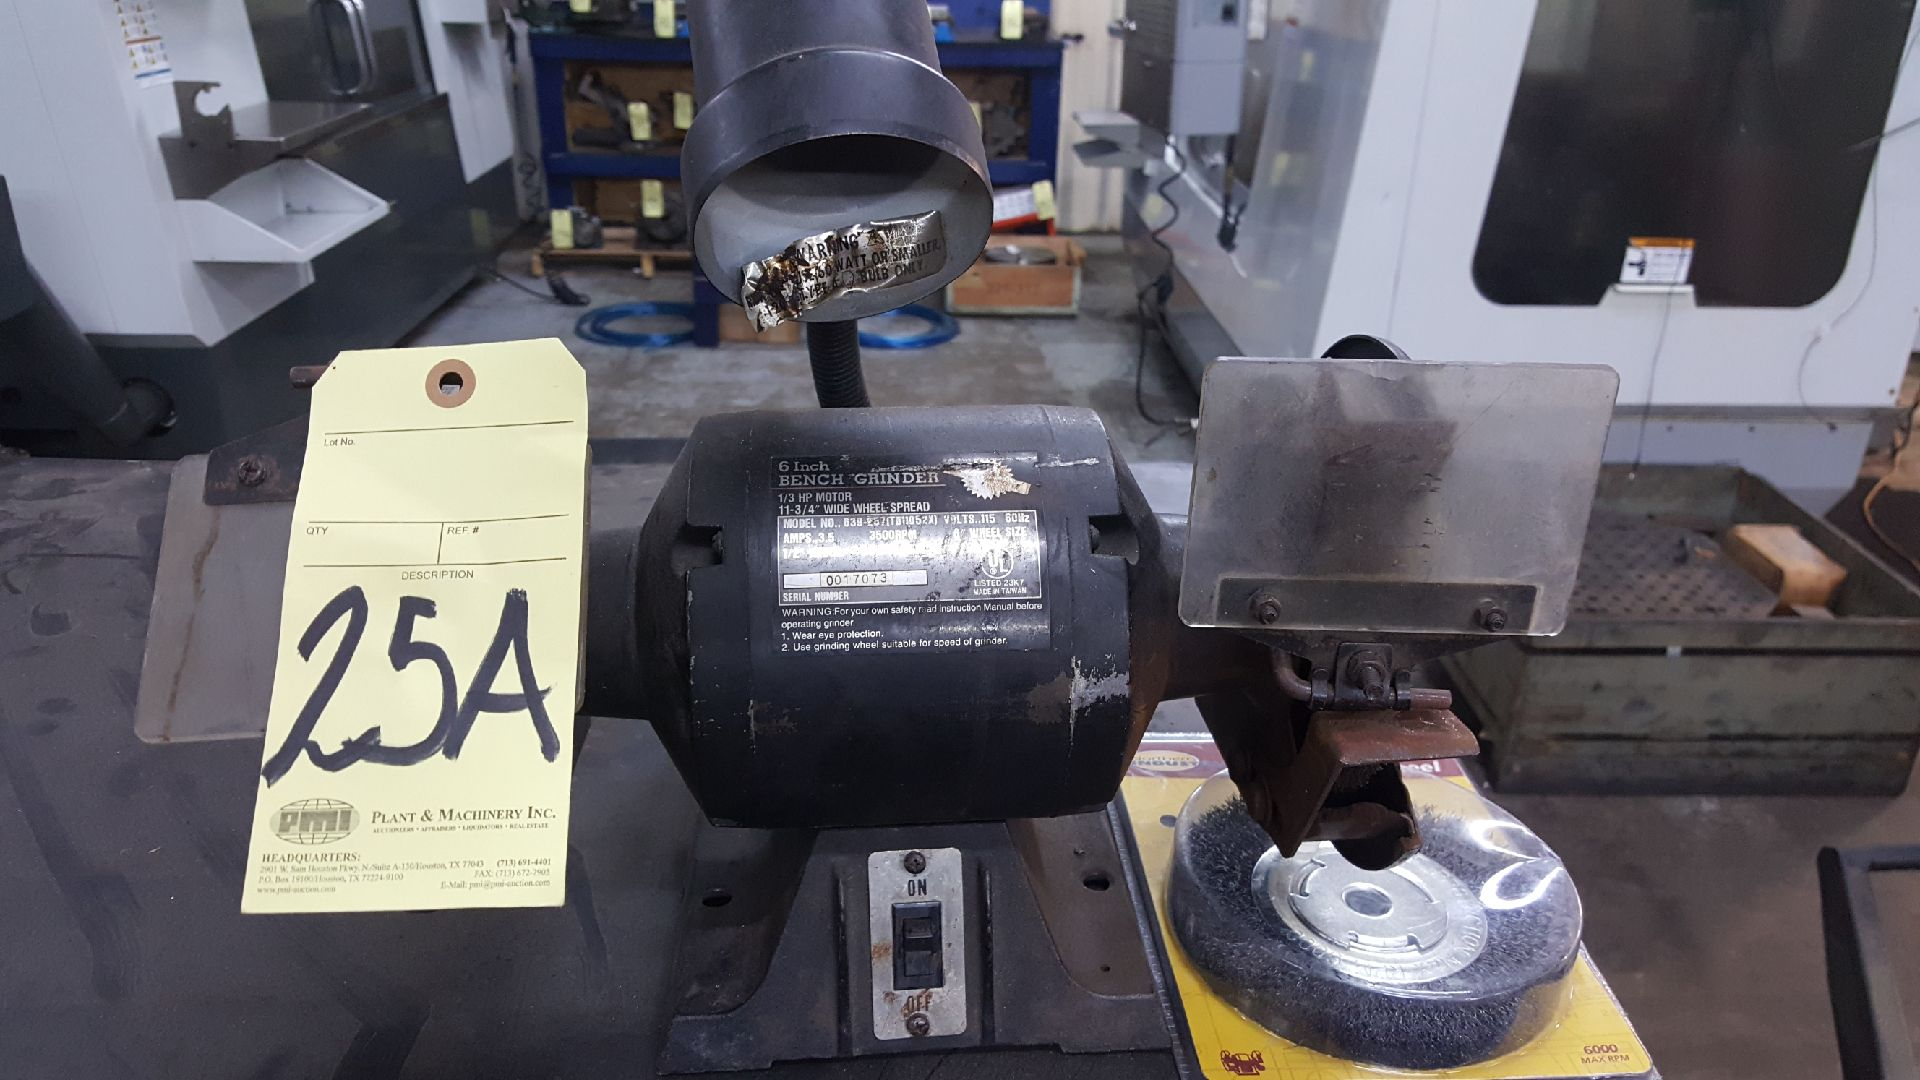 Lot 25A - DOUBLE END GRINDER, 1/3 HP